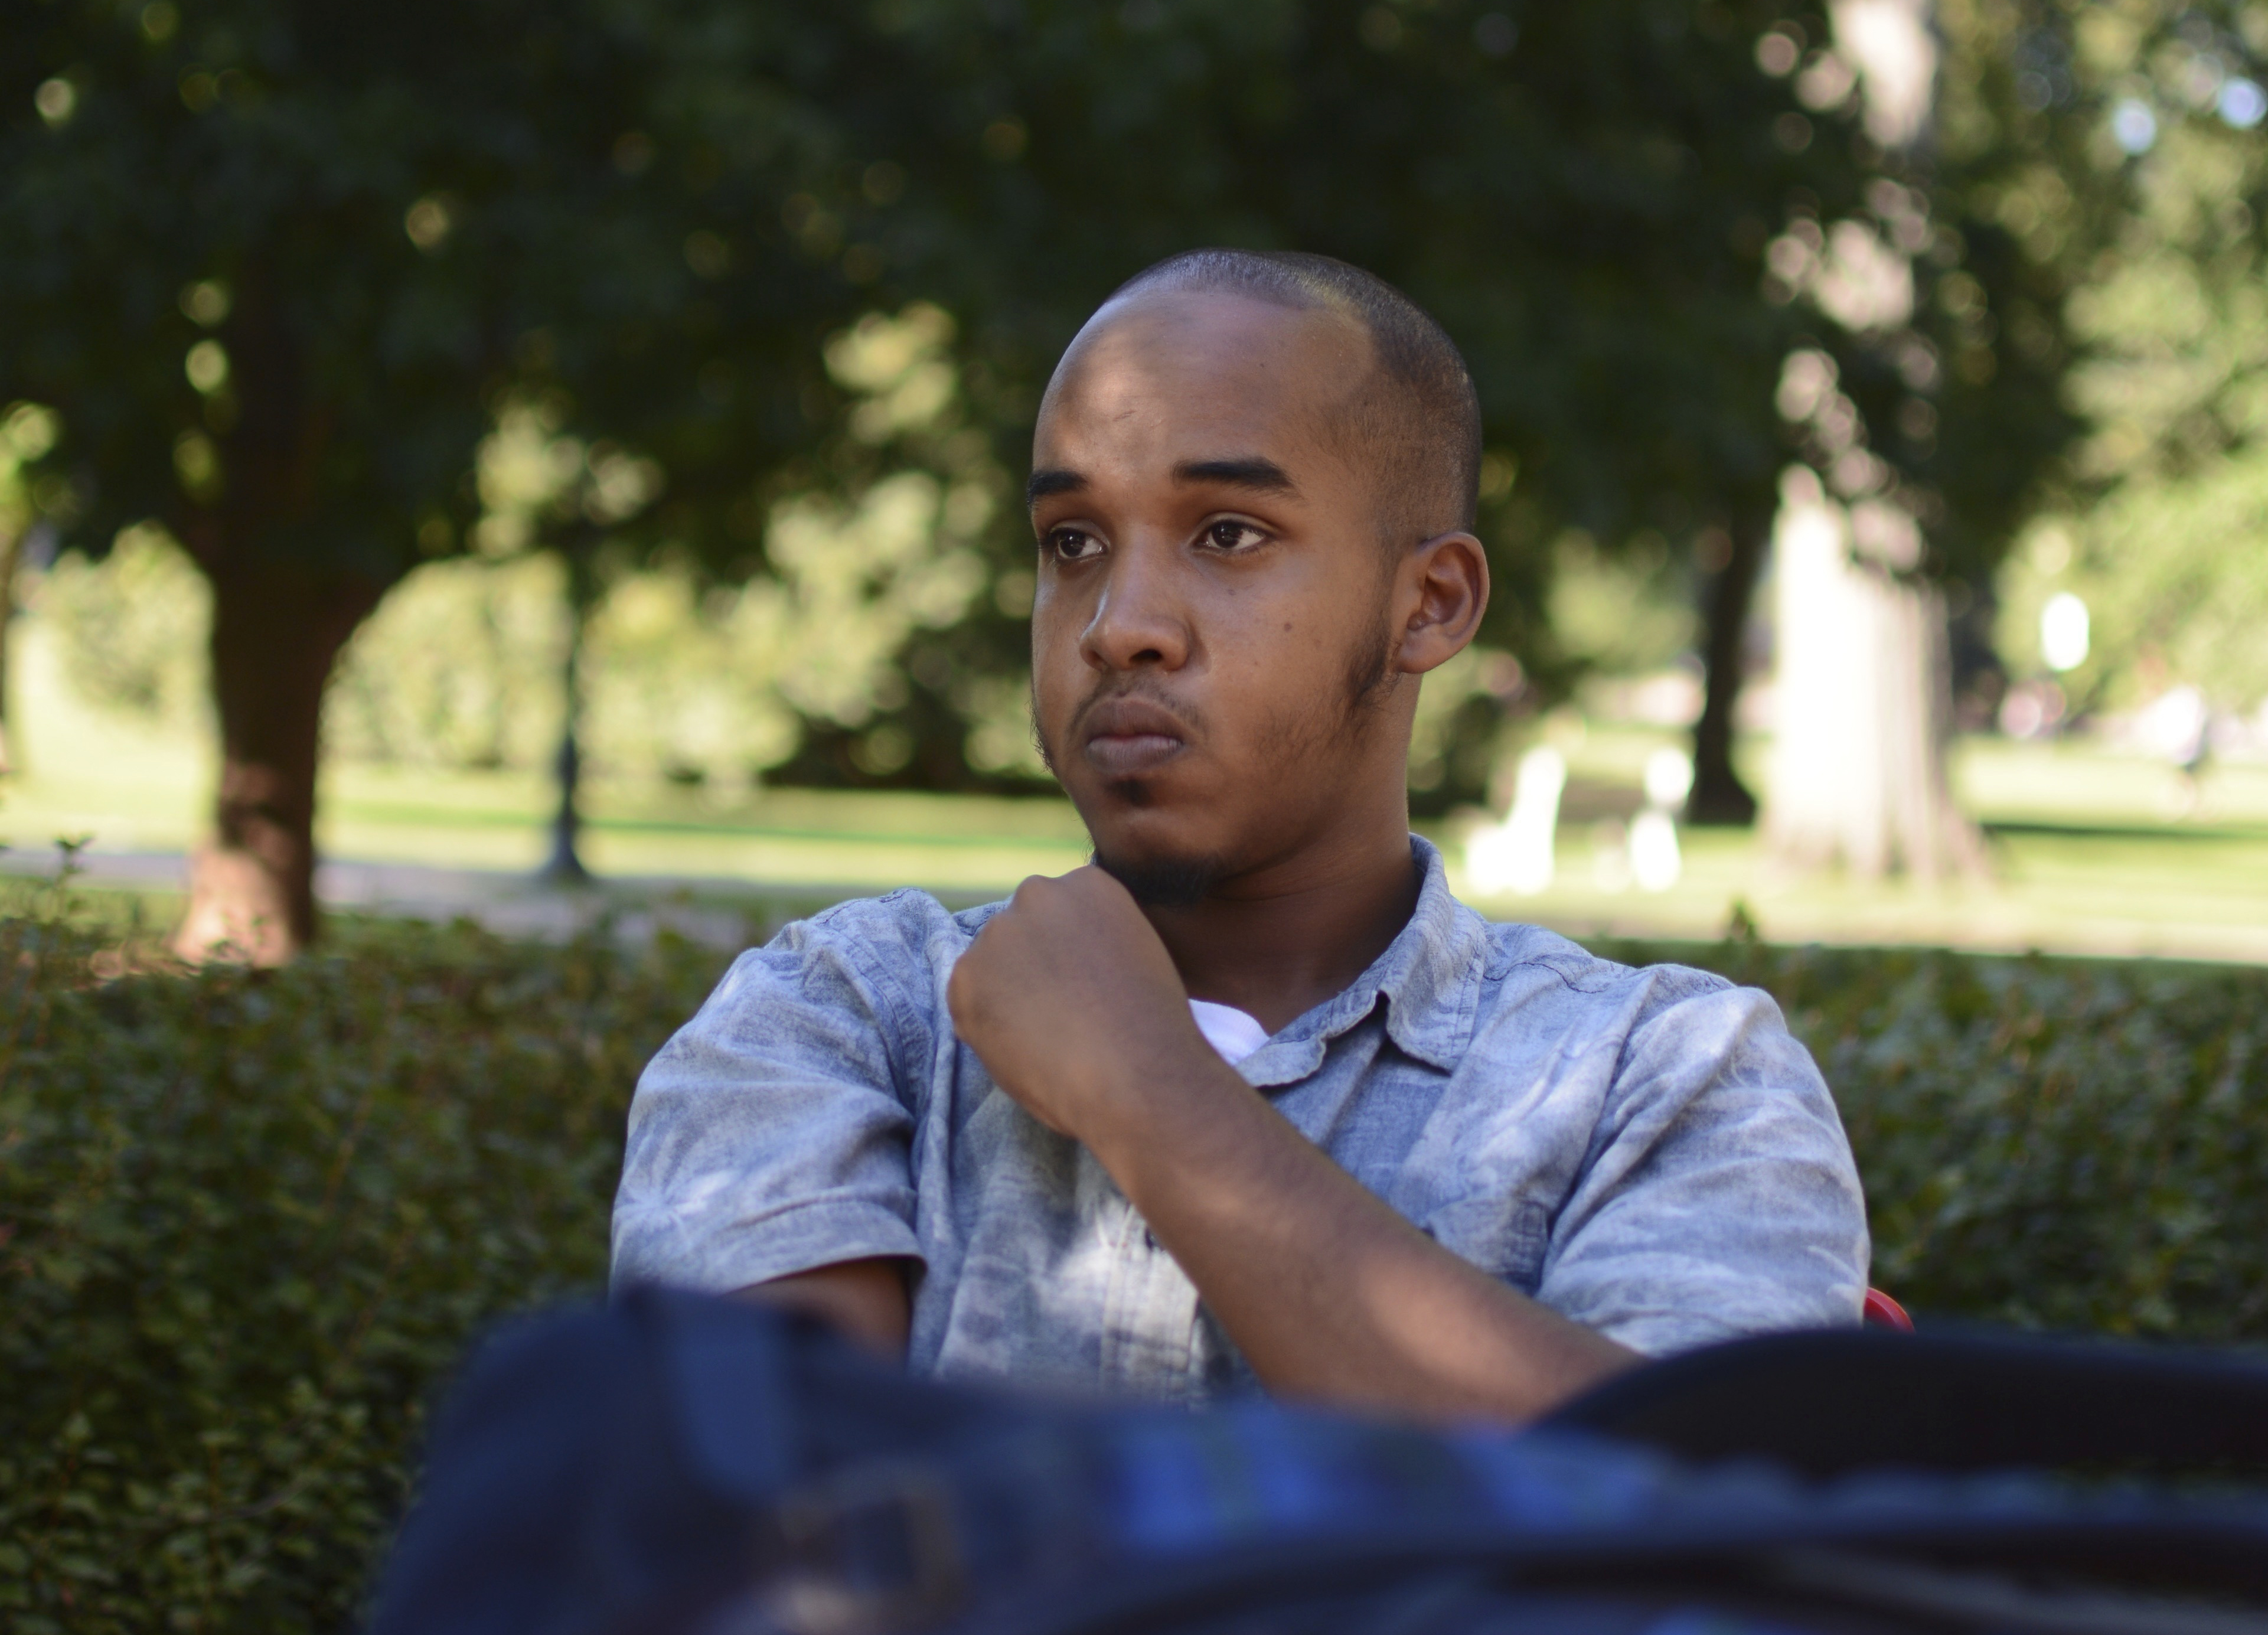 This August 2016 image provided by TheLantern.com shows Abdul Razak Ali Artan in Columbus, Ohio. Authorities identified Abdul Razak Ali Artan as the Somali-born Ohio State University student who plowed his car into a group of pedestrians on campus and then got out and began stabbing people with a knife Monday, Nov. 28, 2016, before he was shot to death by an officer. | Photo by Kevin Stankiewicz/TheLantern.com via AP, St. George News